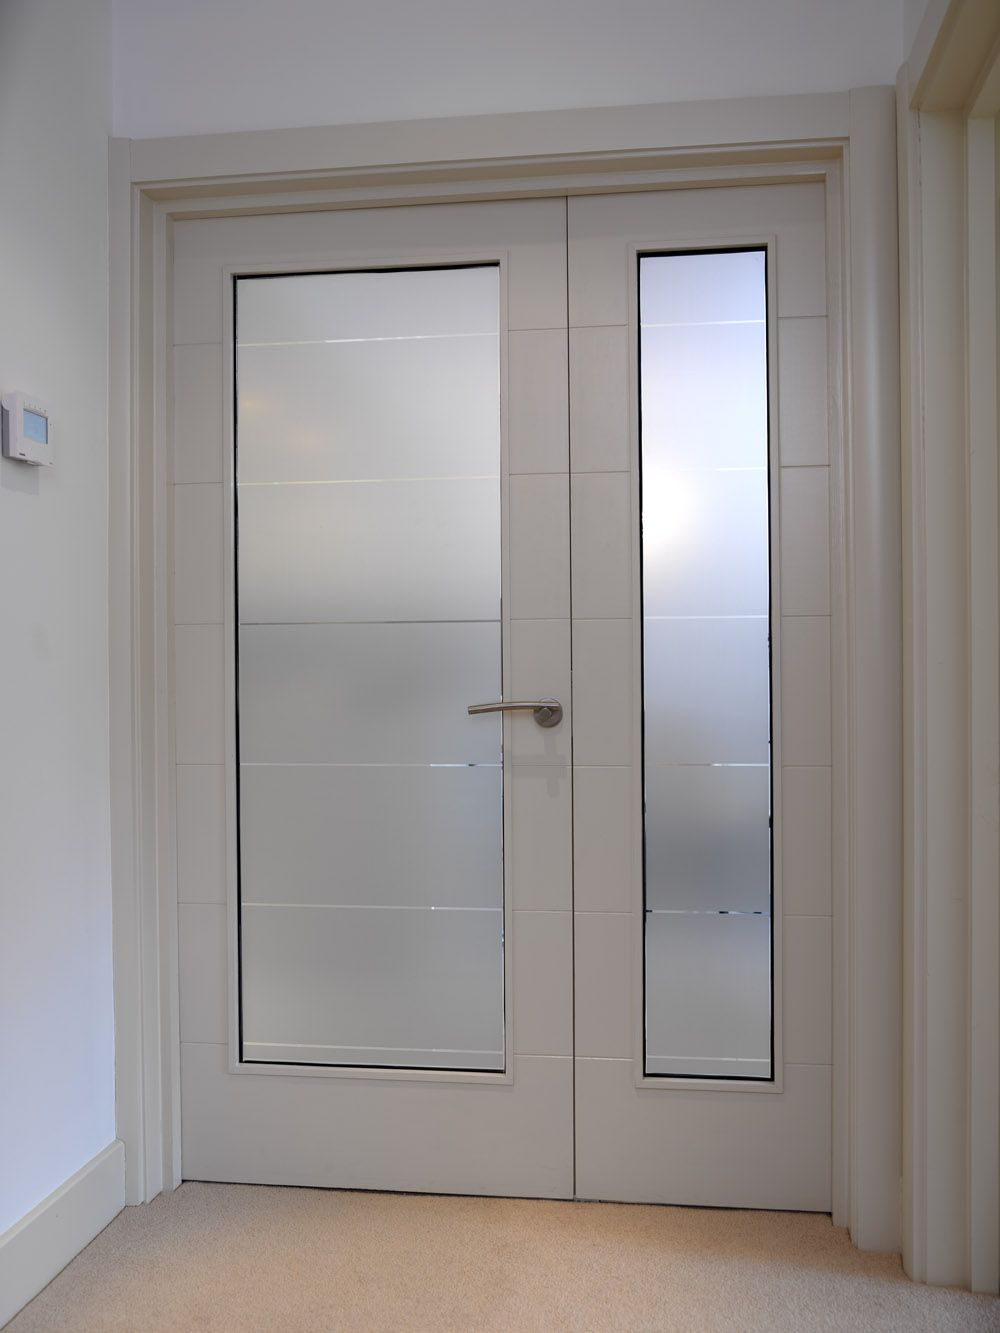 Stunning White Glazed Doors With Frosted Glass And Horizontal